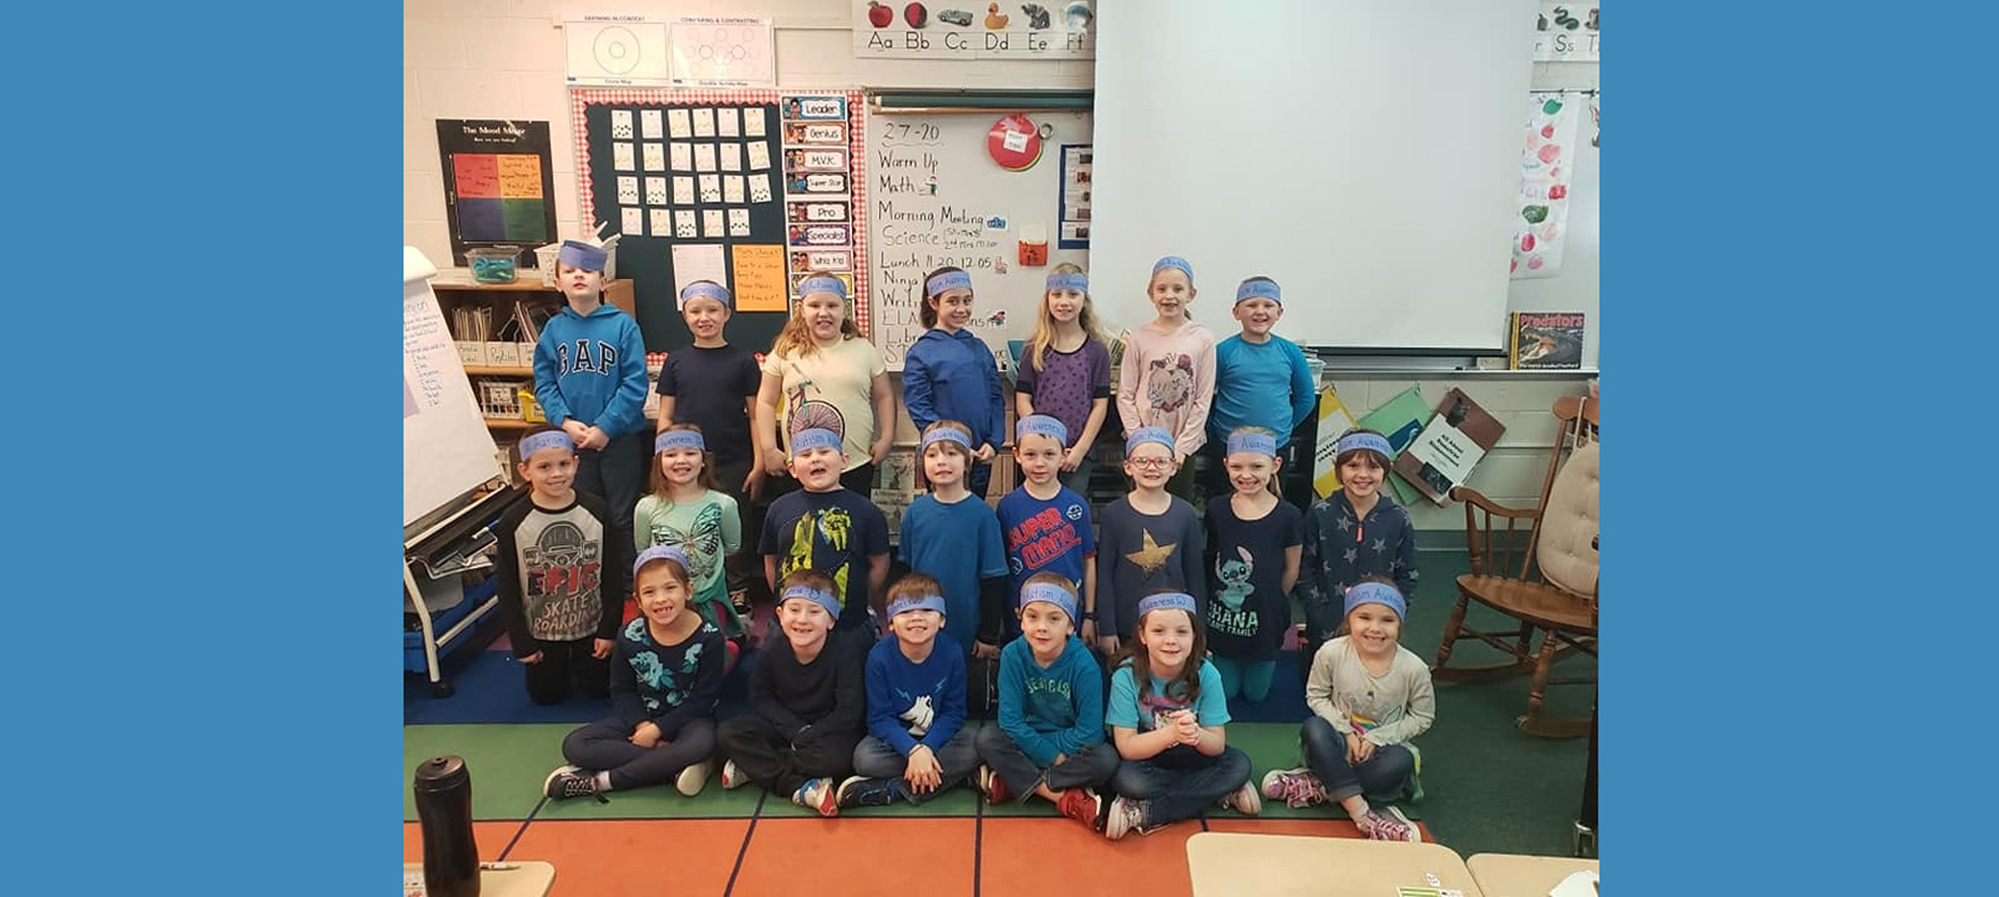 Students in class with head bands that say Autism Awareness